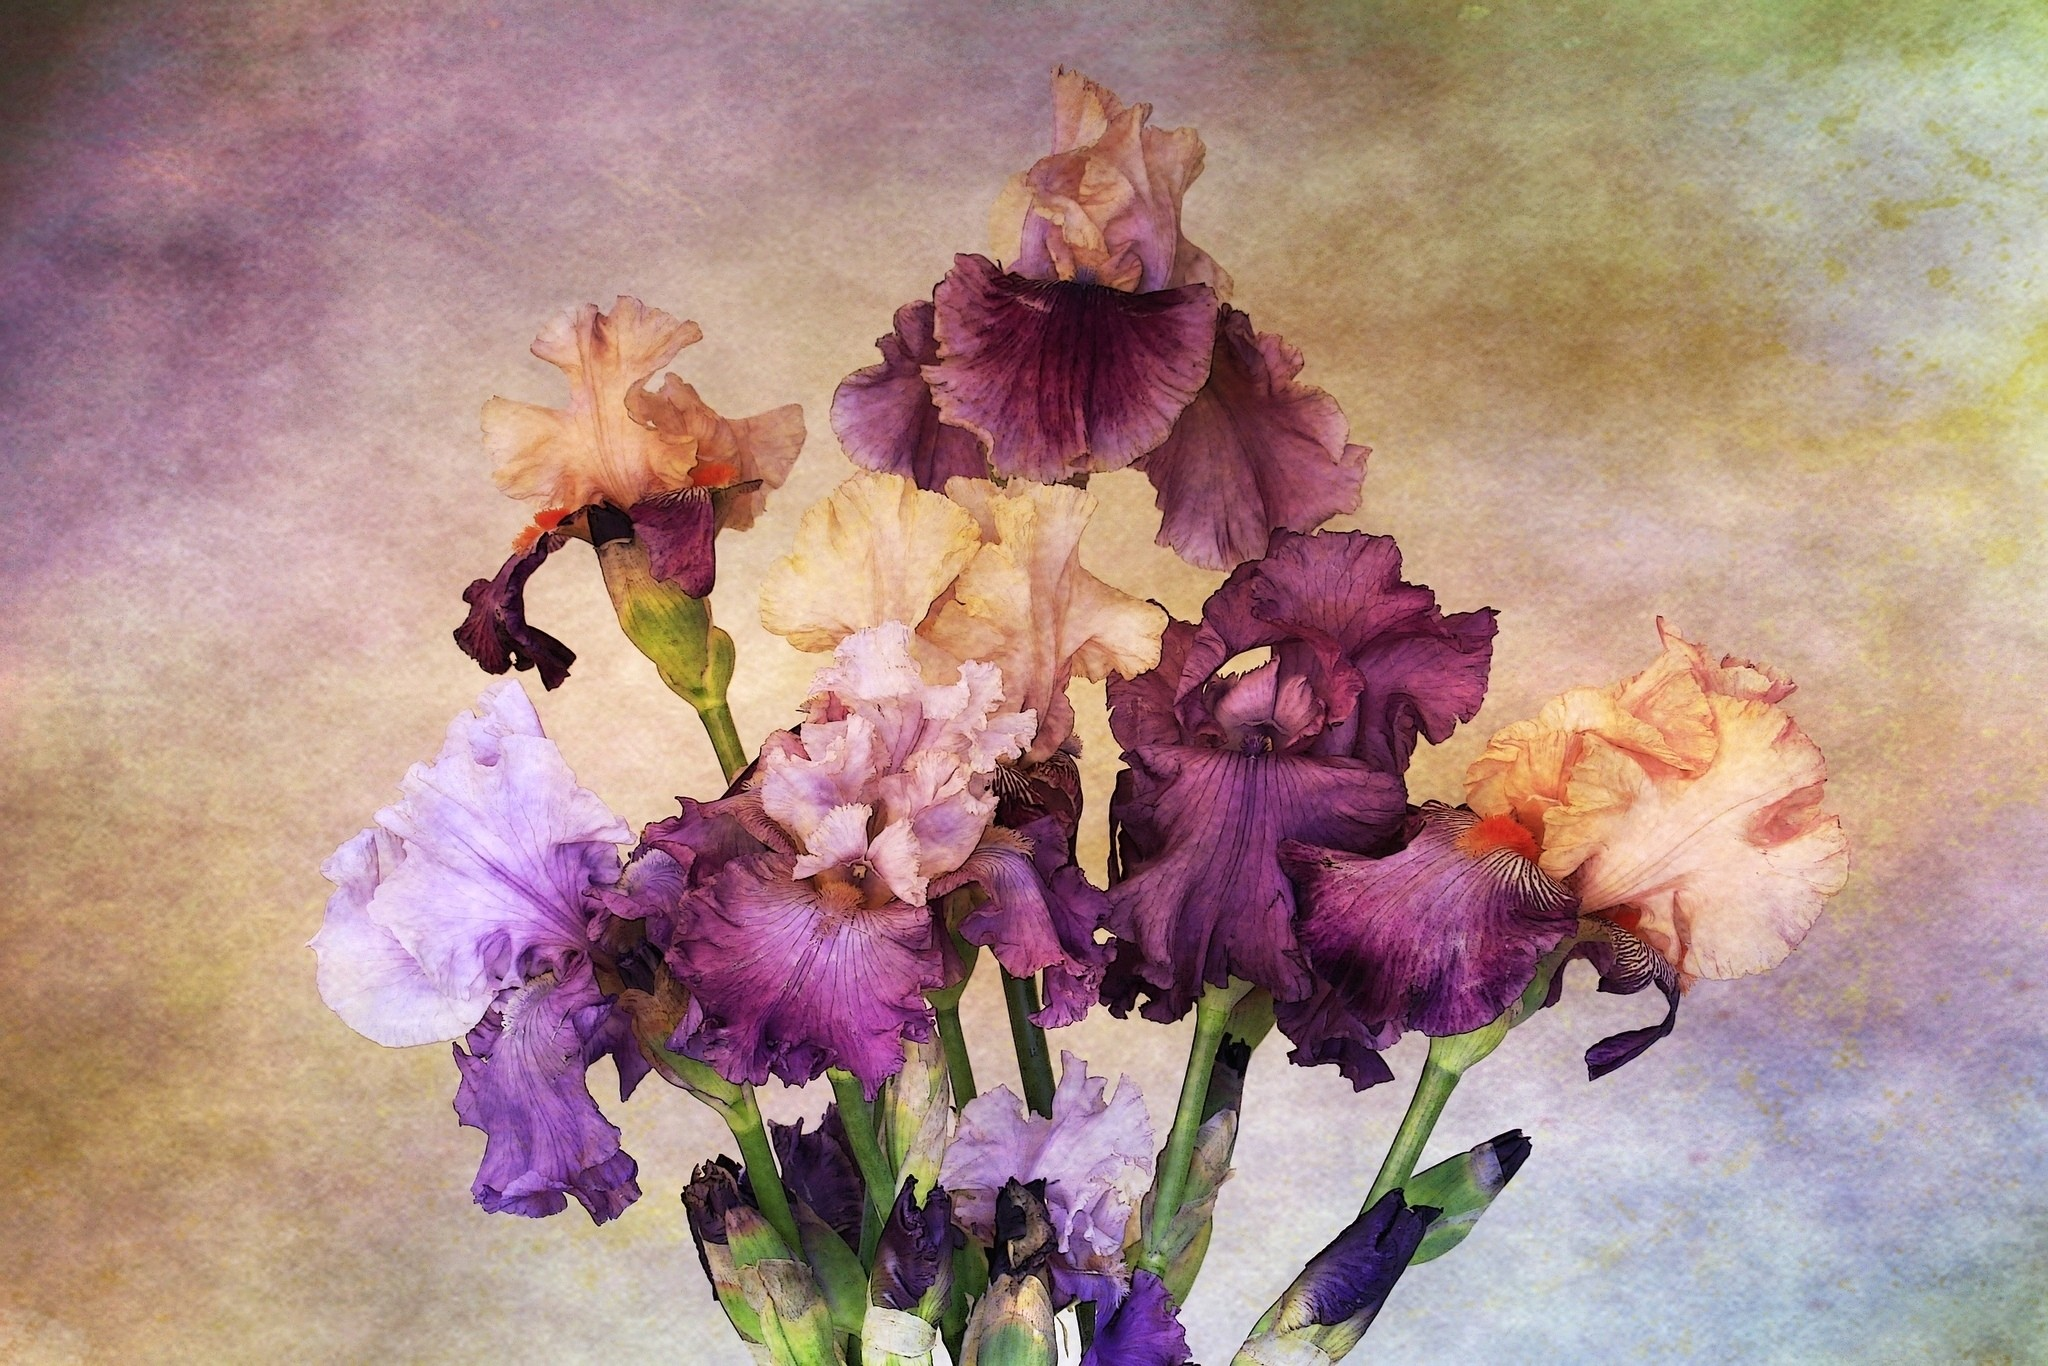 2048x1366 Flowers Flowers Paint Irises Drawing Nature Wallpapers Images